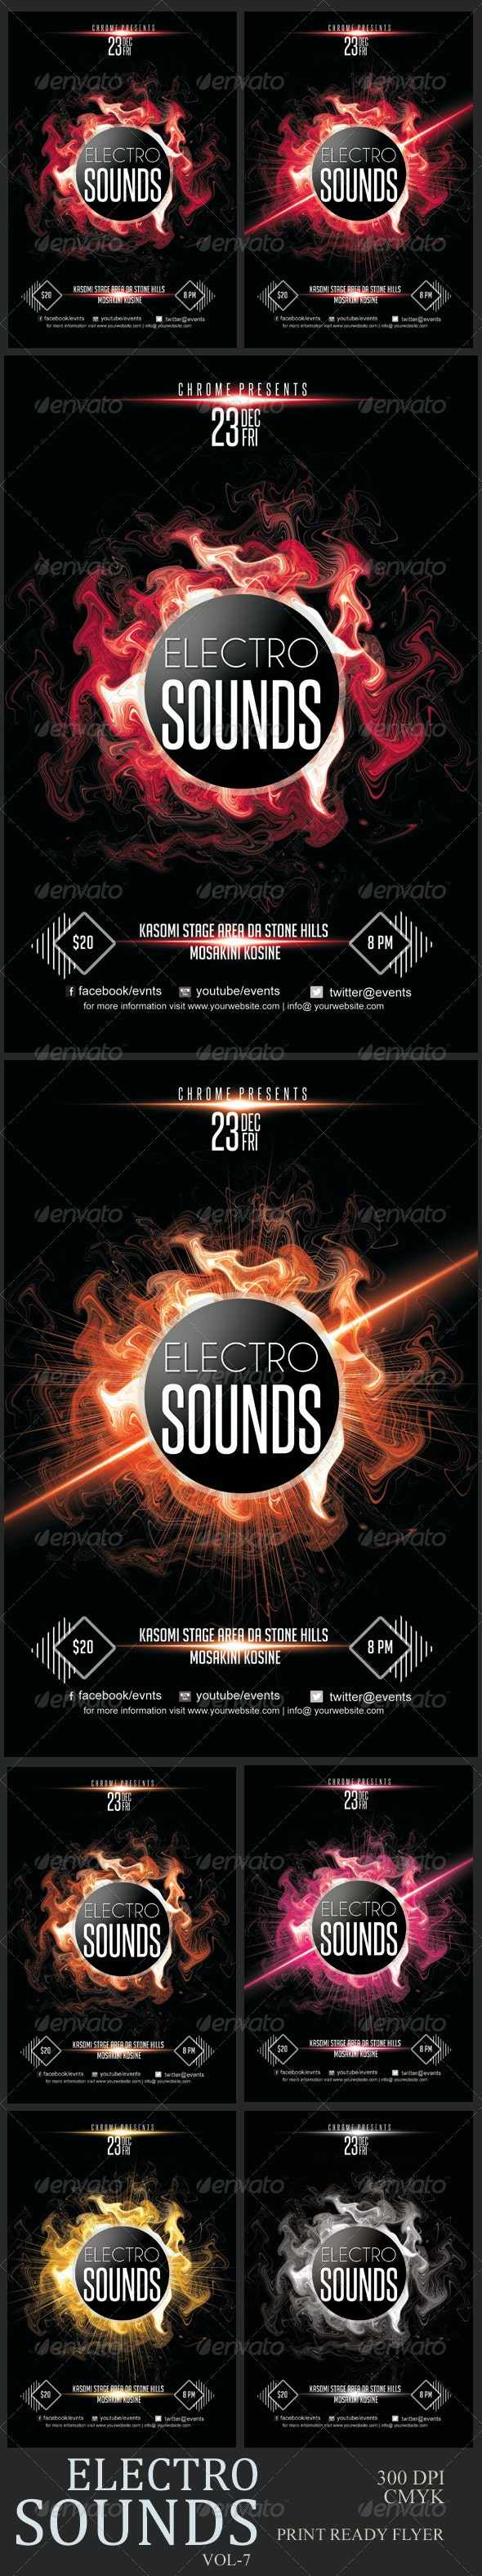 Electro Sounds Futuristic Flyer 7 - Clubs & Parties Events